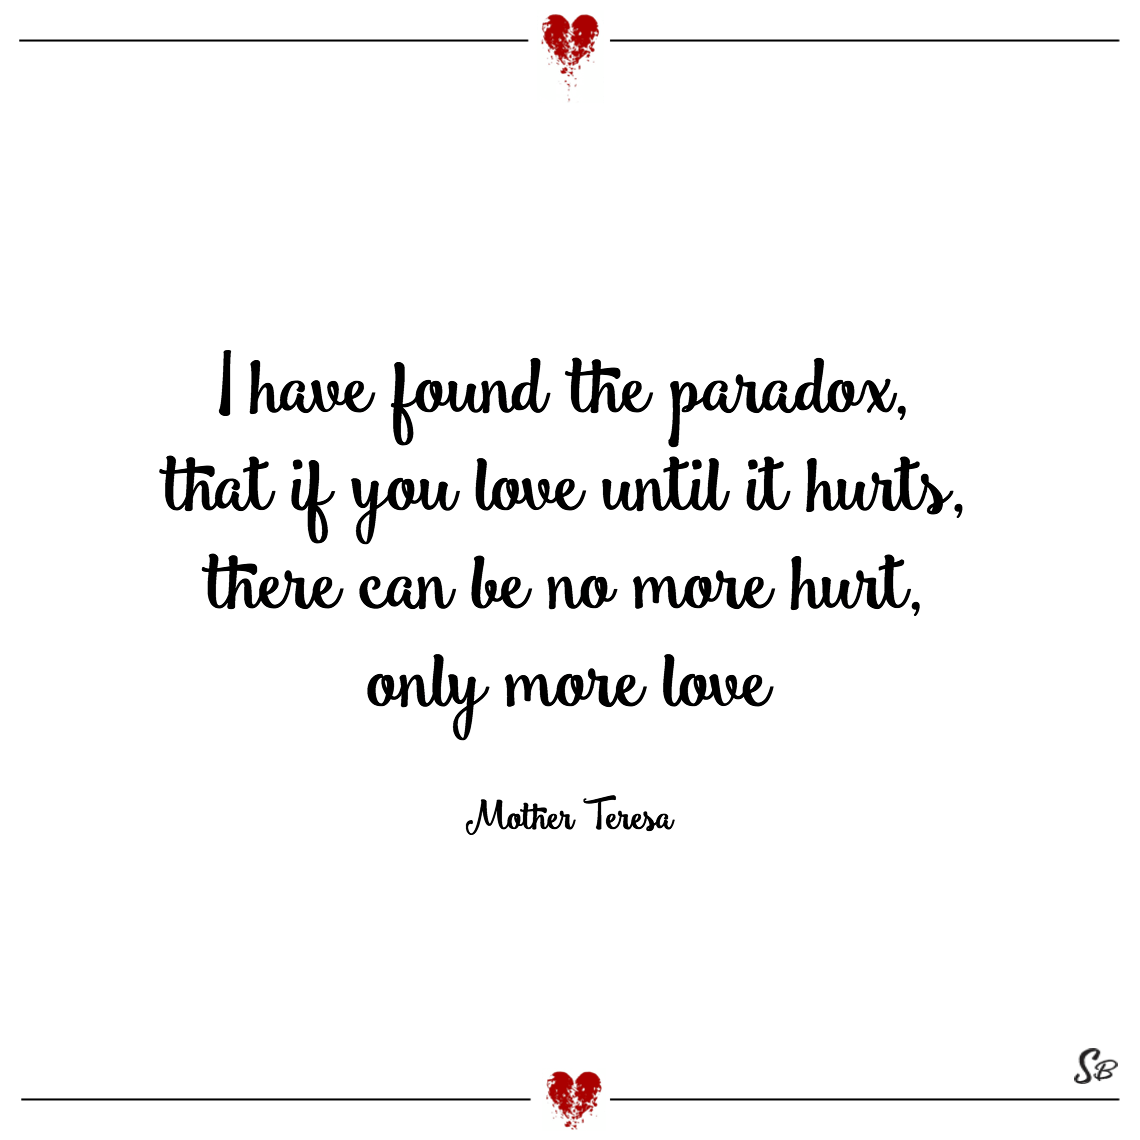 I have found the paradox, that if you love until it hurts, there can be no more hurt, only more love mother teresa